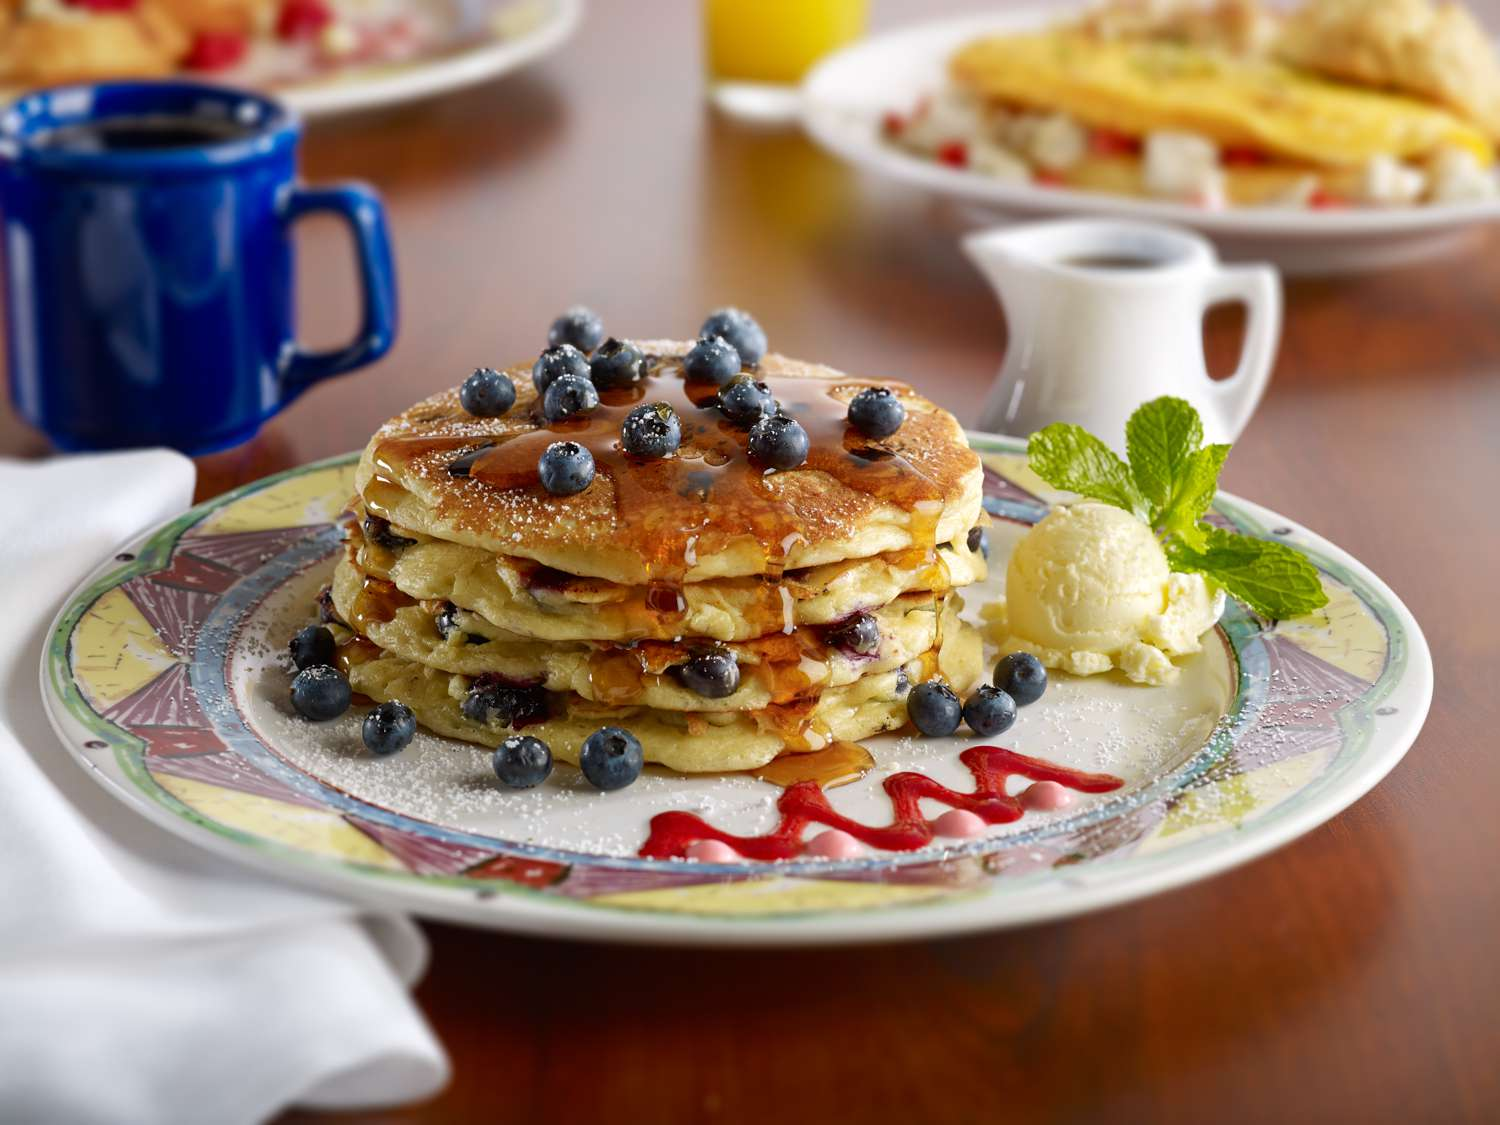 stack of four blueberry pancakes on a colorful plater with blueberries and syrup drizzled on top and butter on the side